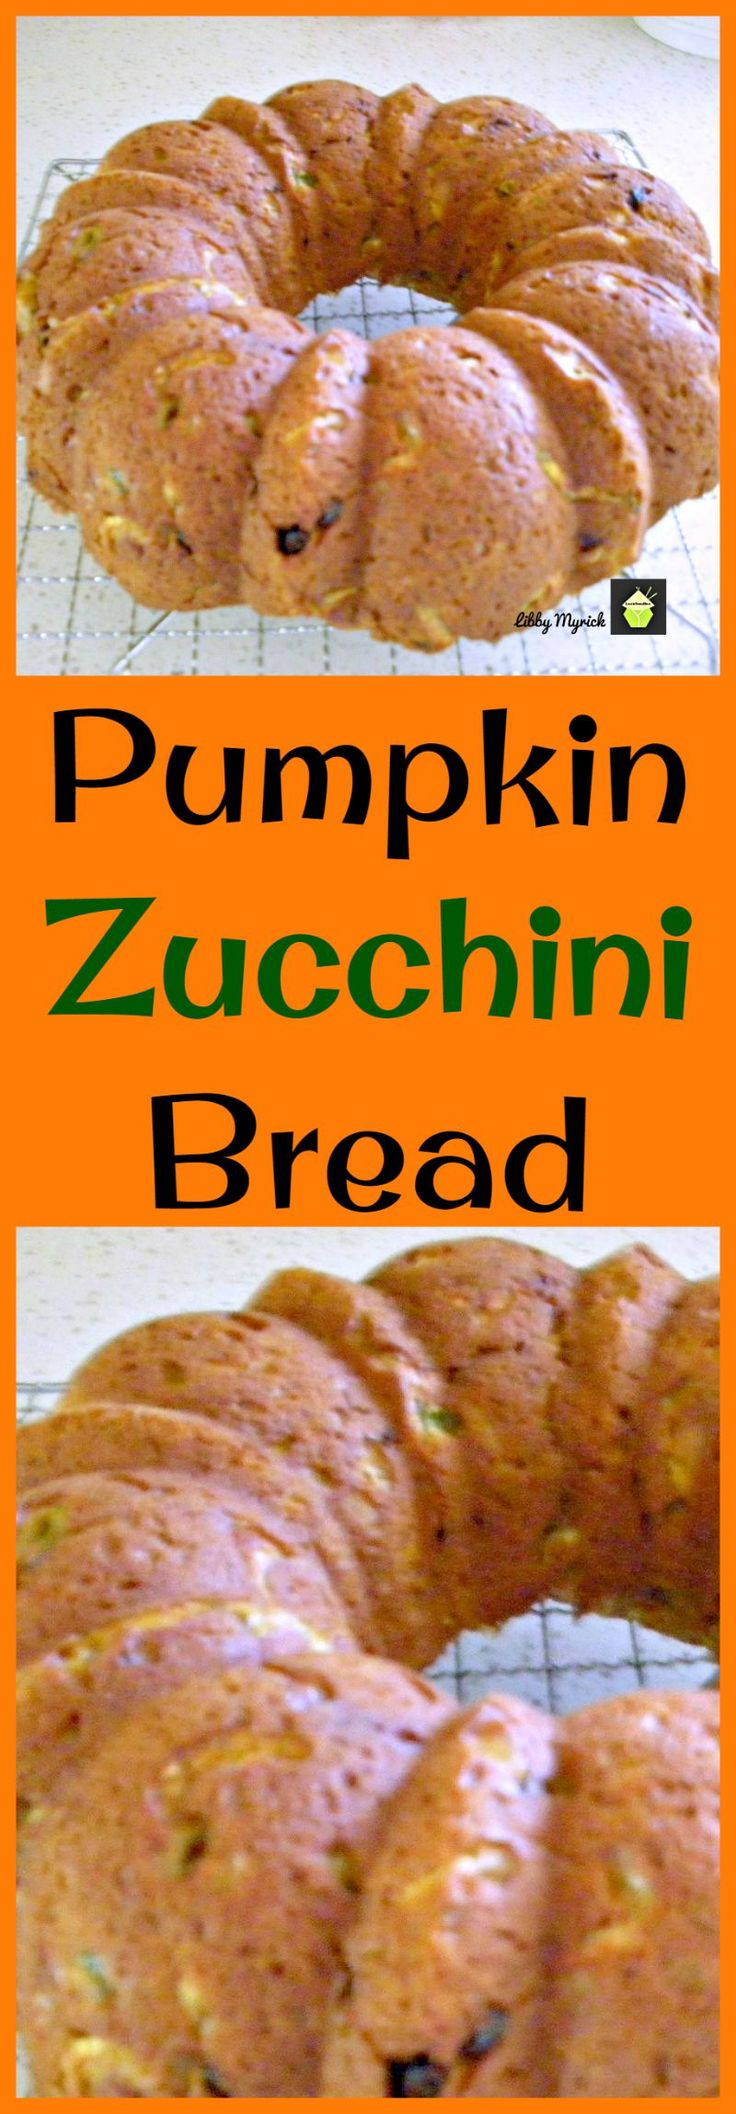 Pumpkin Cupcakes Ina Garten 29 best images about special desserts on pinterest | ina garten